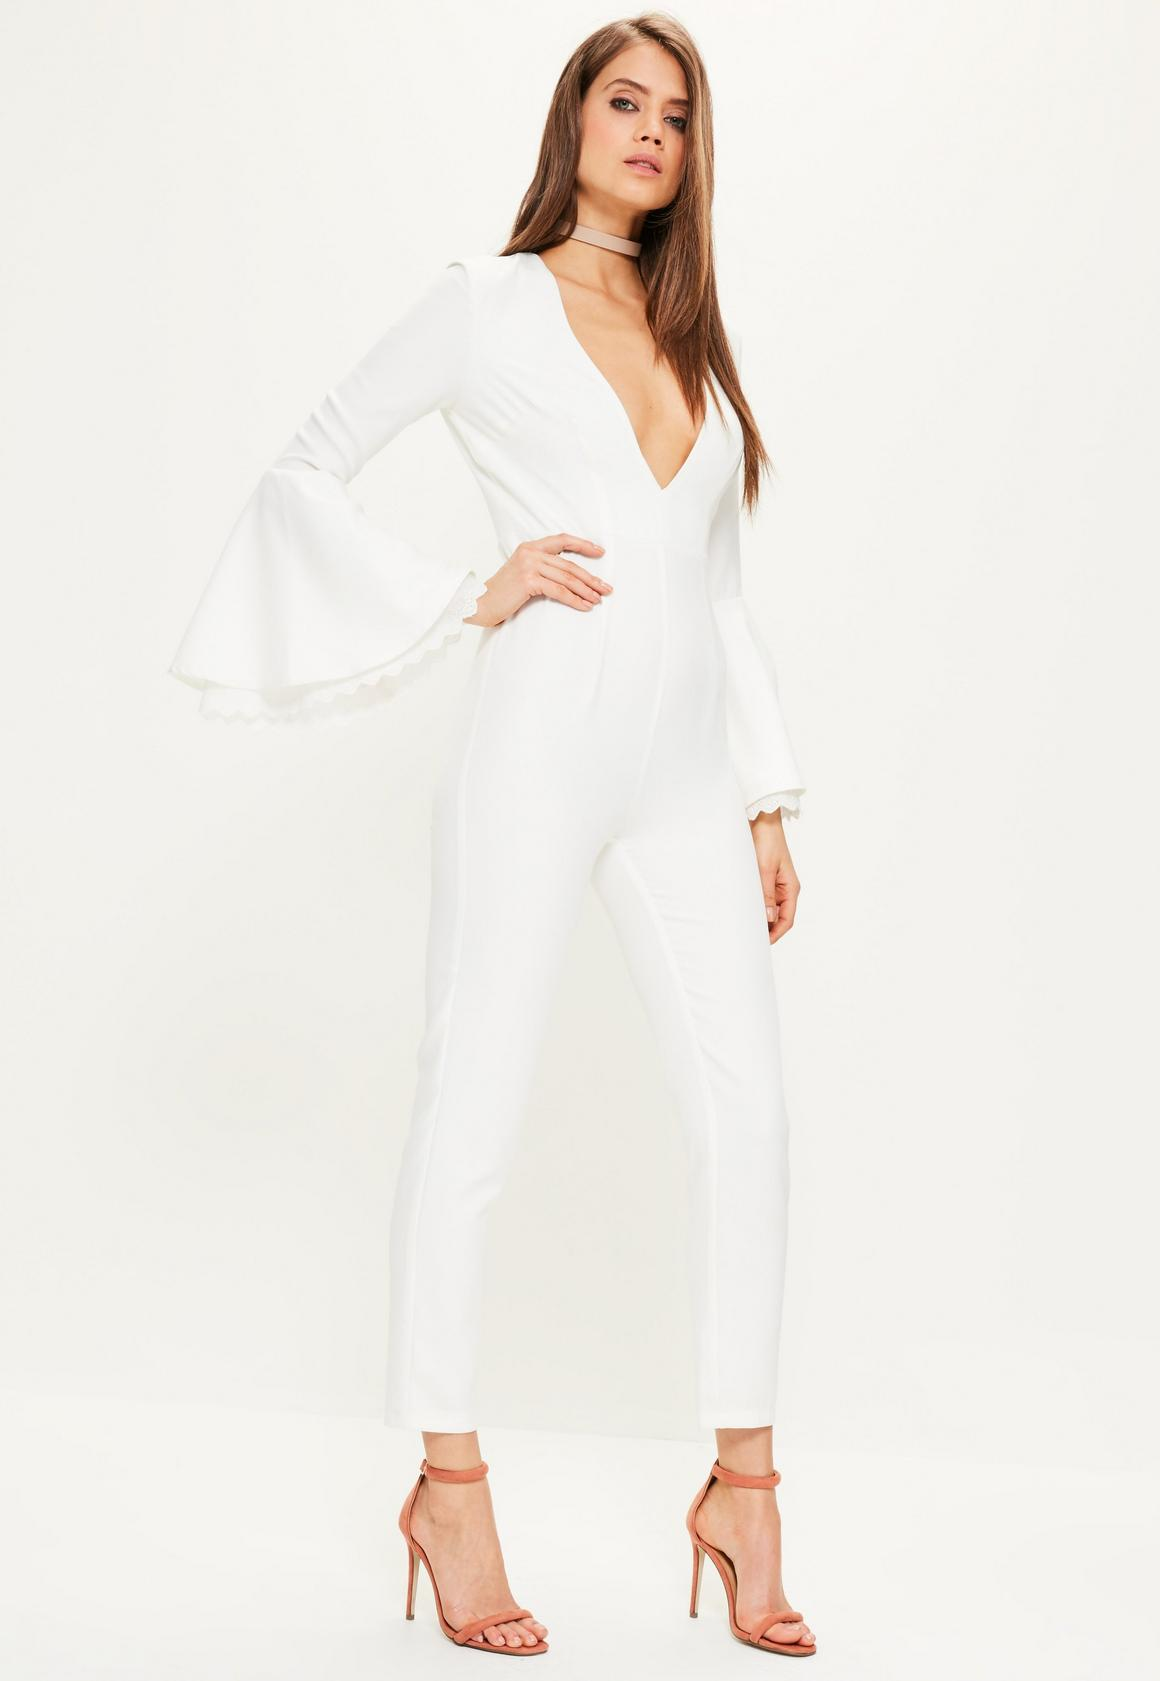 Jumpsuit - Shop Jumpsuits Online | Missguided